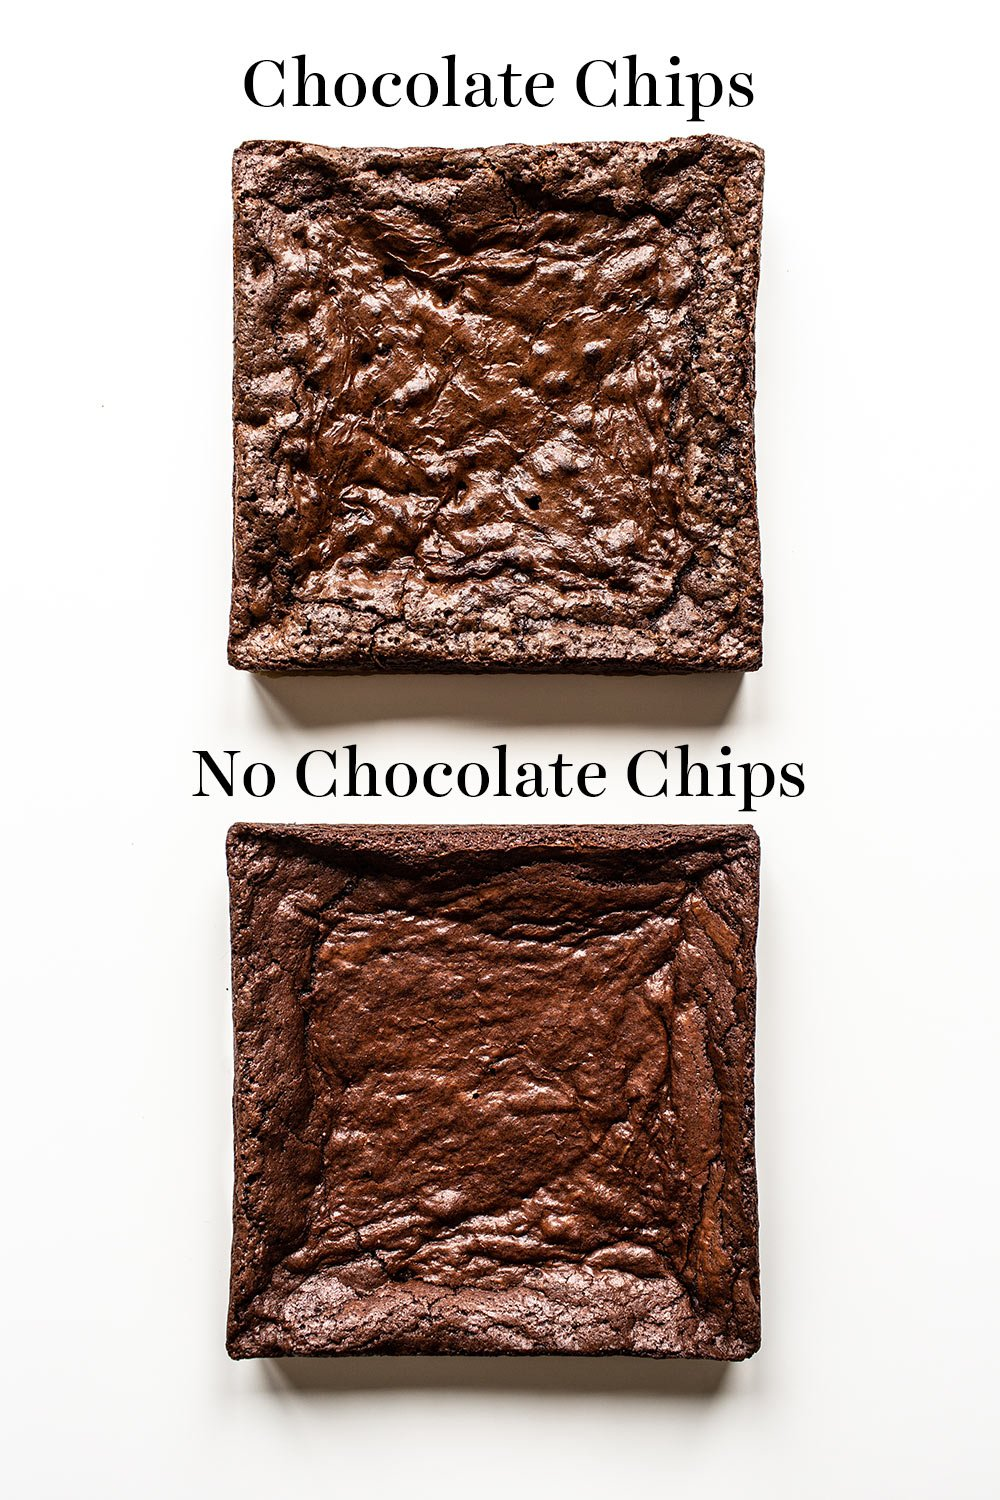 crinkly crust comparison of chocolate chip brownies and no chocolate chip brownies